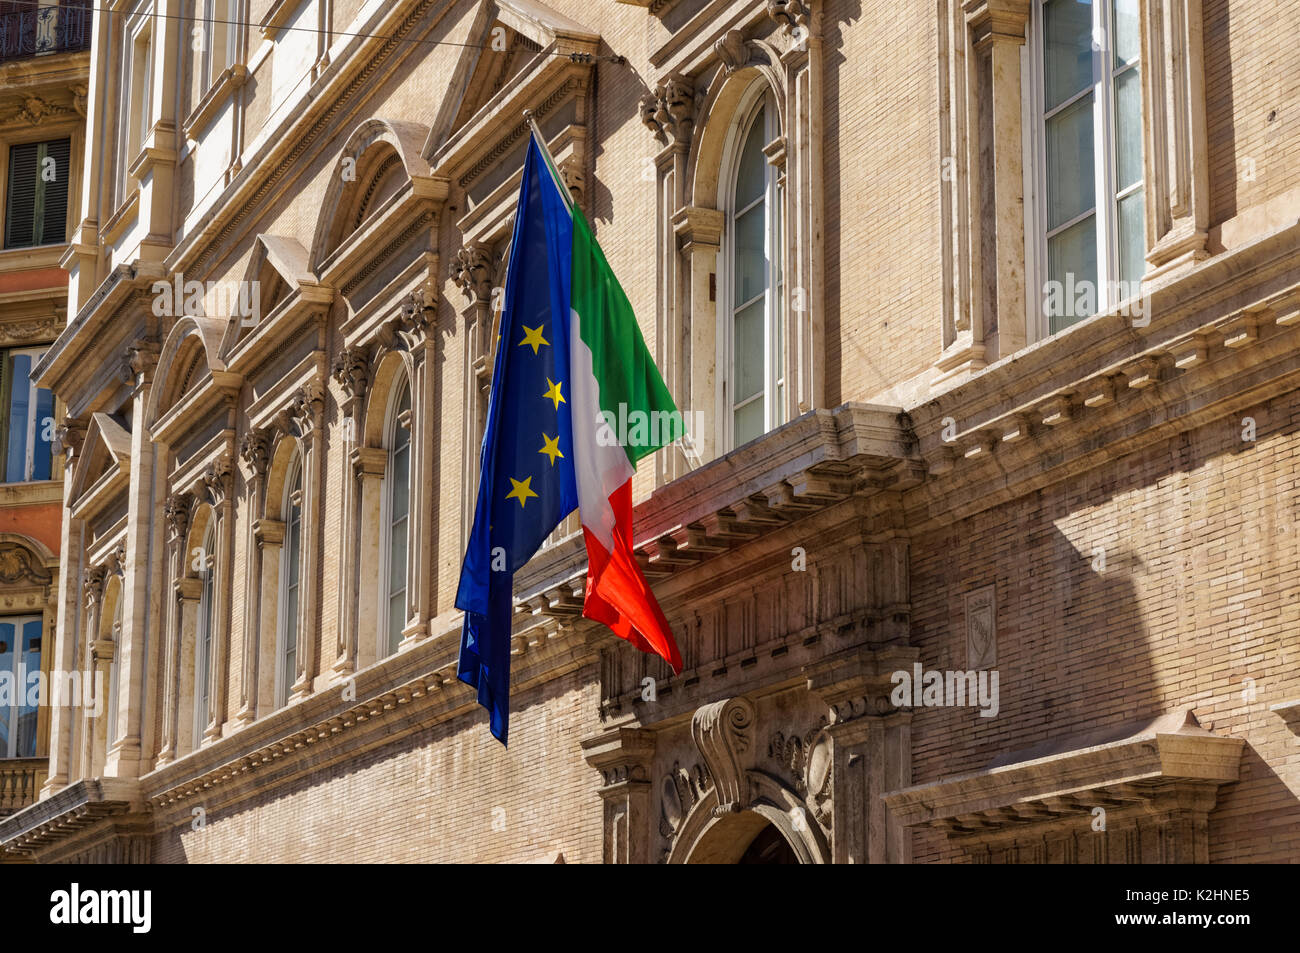 Italian and European Union flags on facade of the building in Rome, Italy - Stock Image